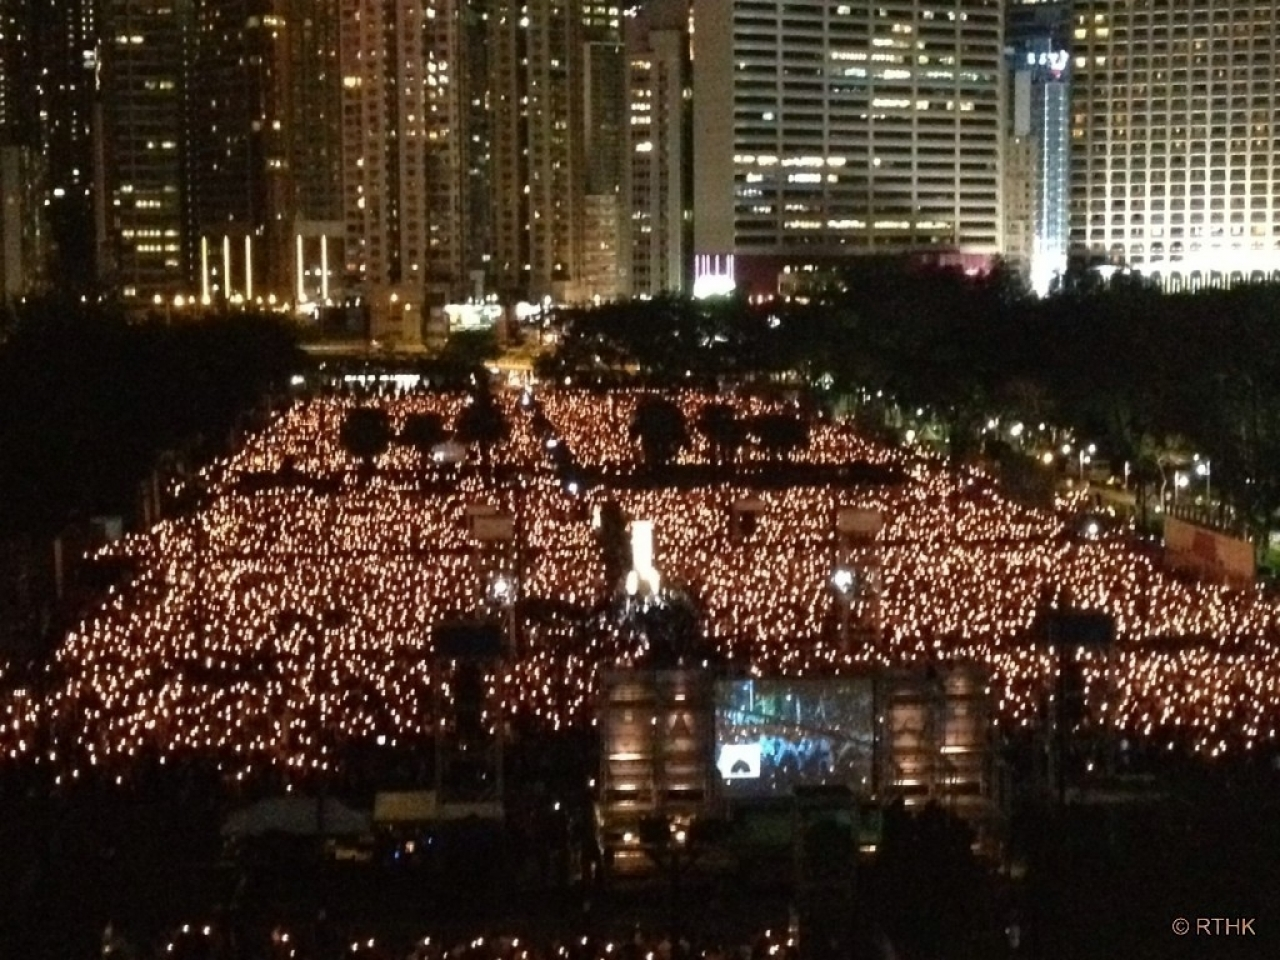 The June 4th candlelight vigil has attracted tens of thousands of people in previous years. File photo: RTHK